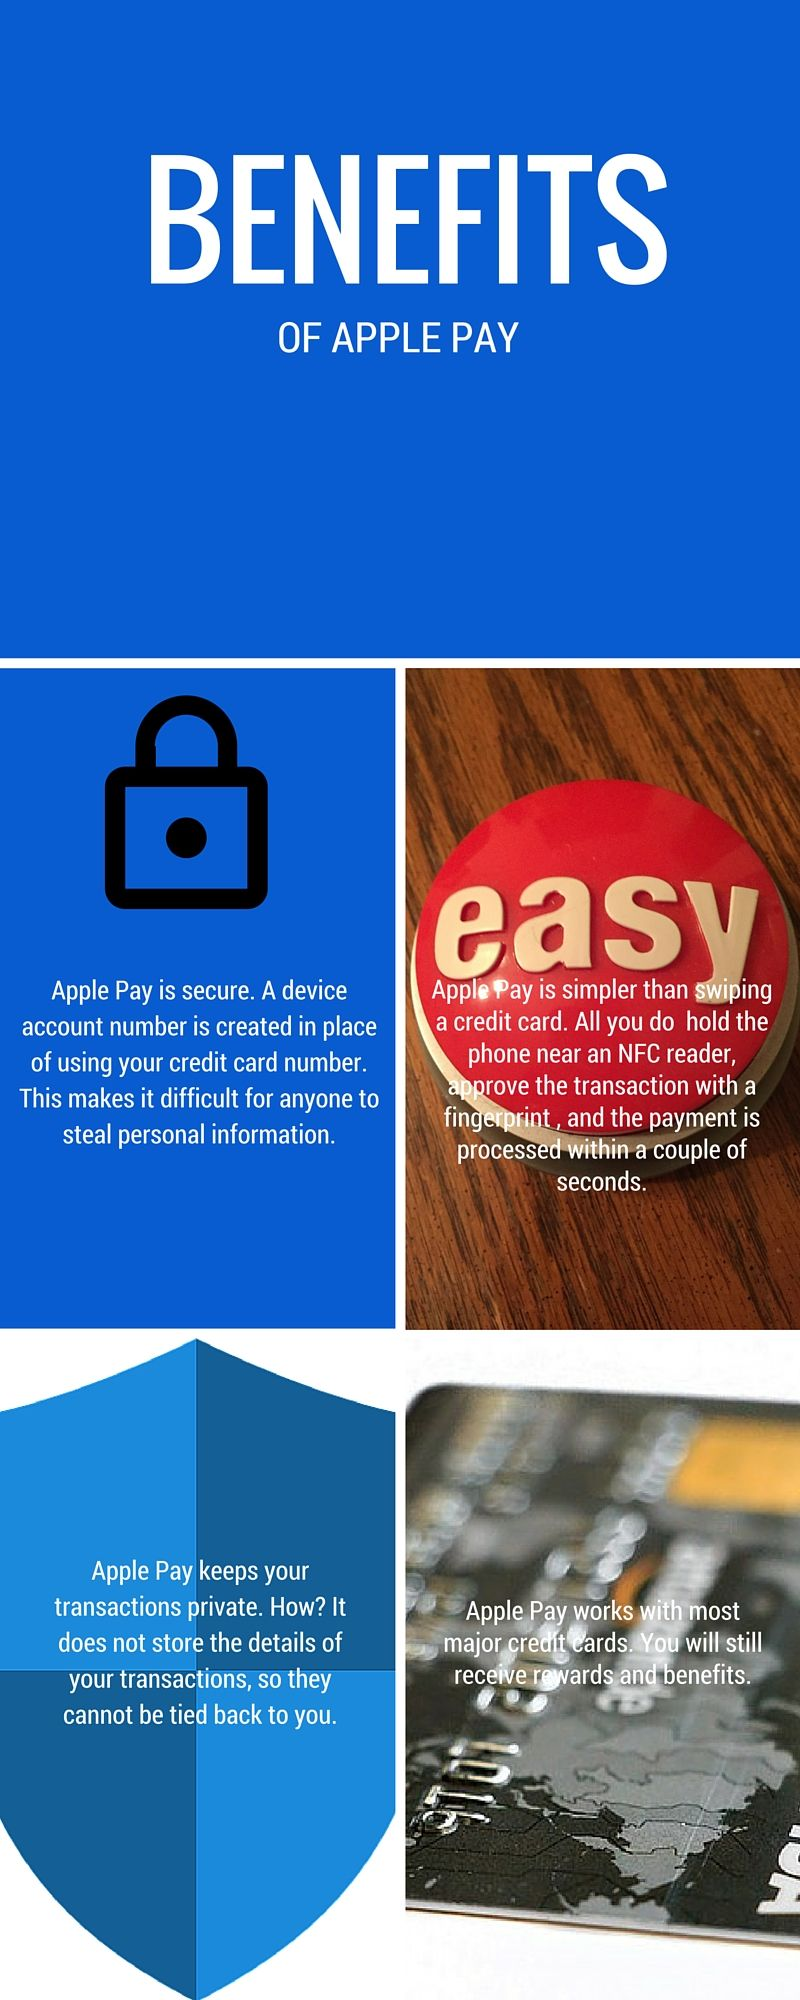 Benefits of apple pay apple benefits apple pay vending